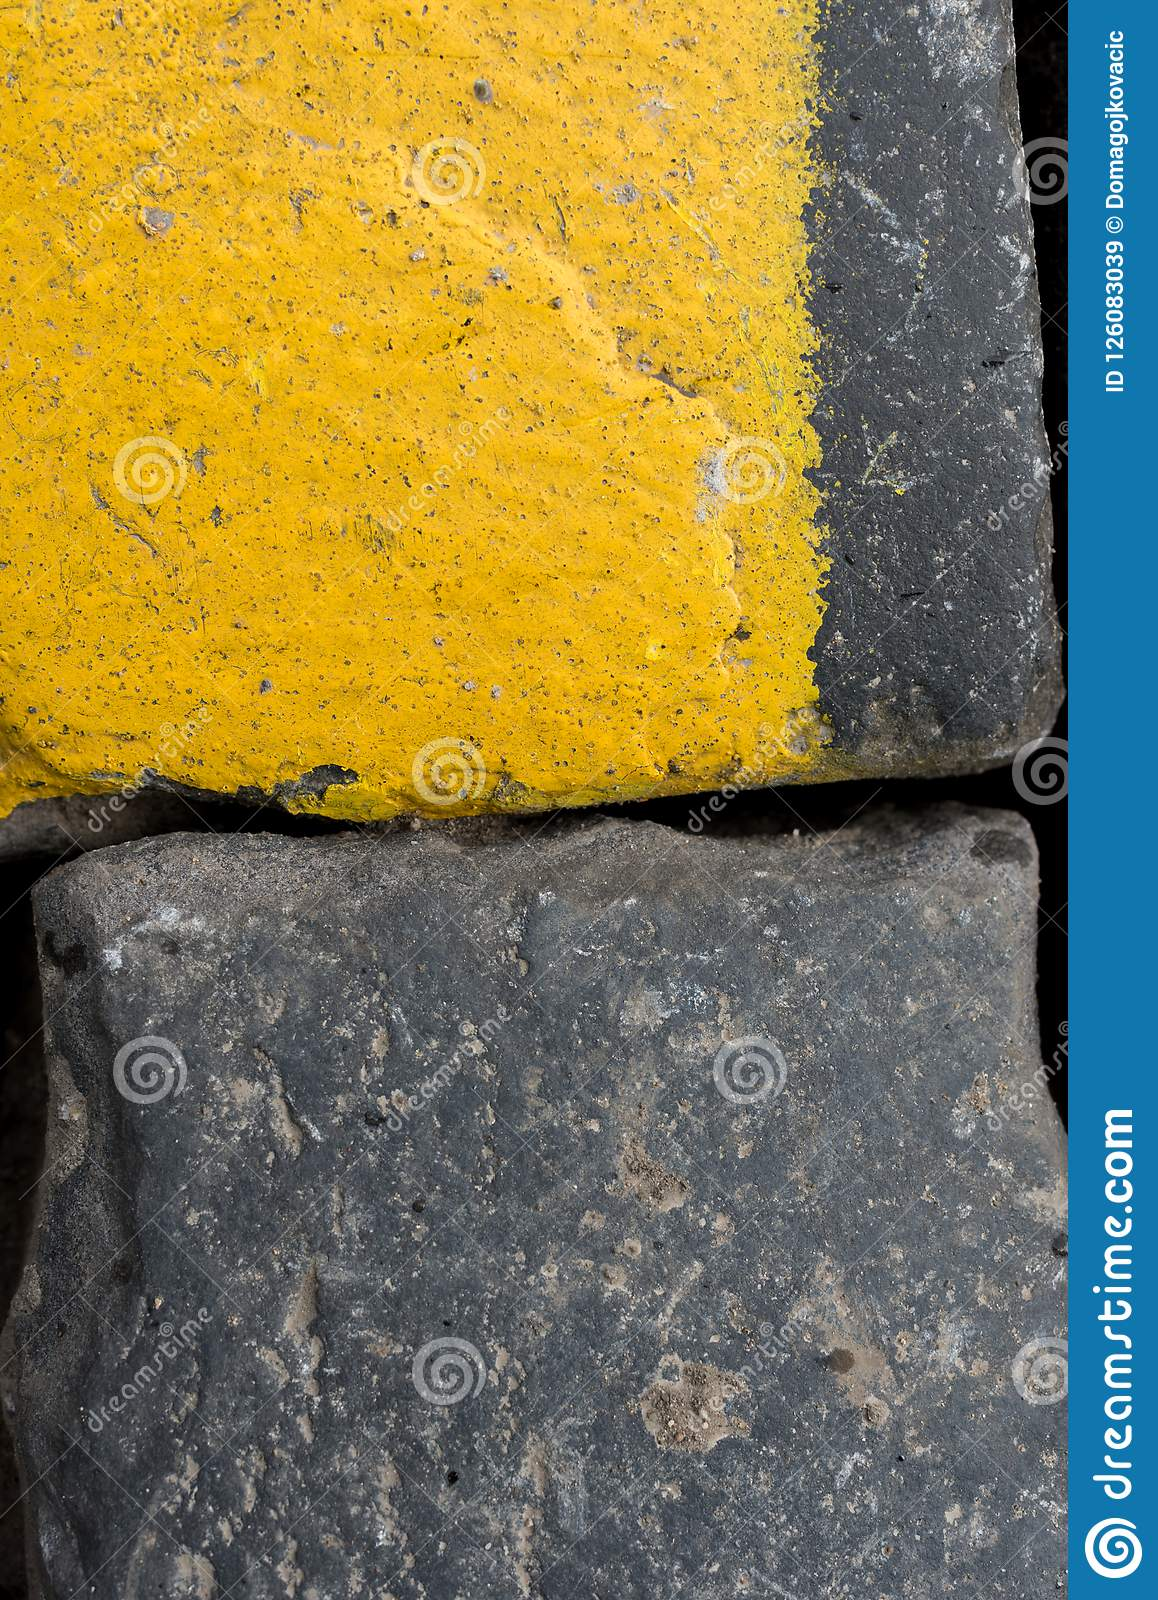 Old yellow and black granite road cubes or cobbles as background or wallpaper. Vertical image.